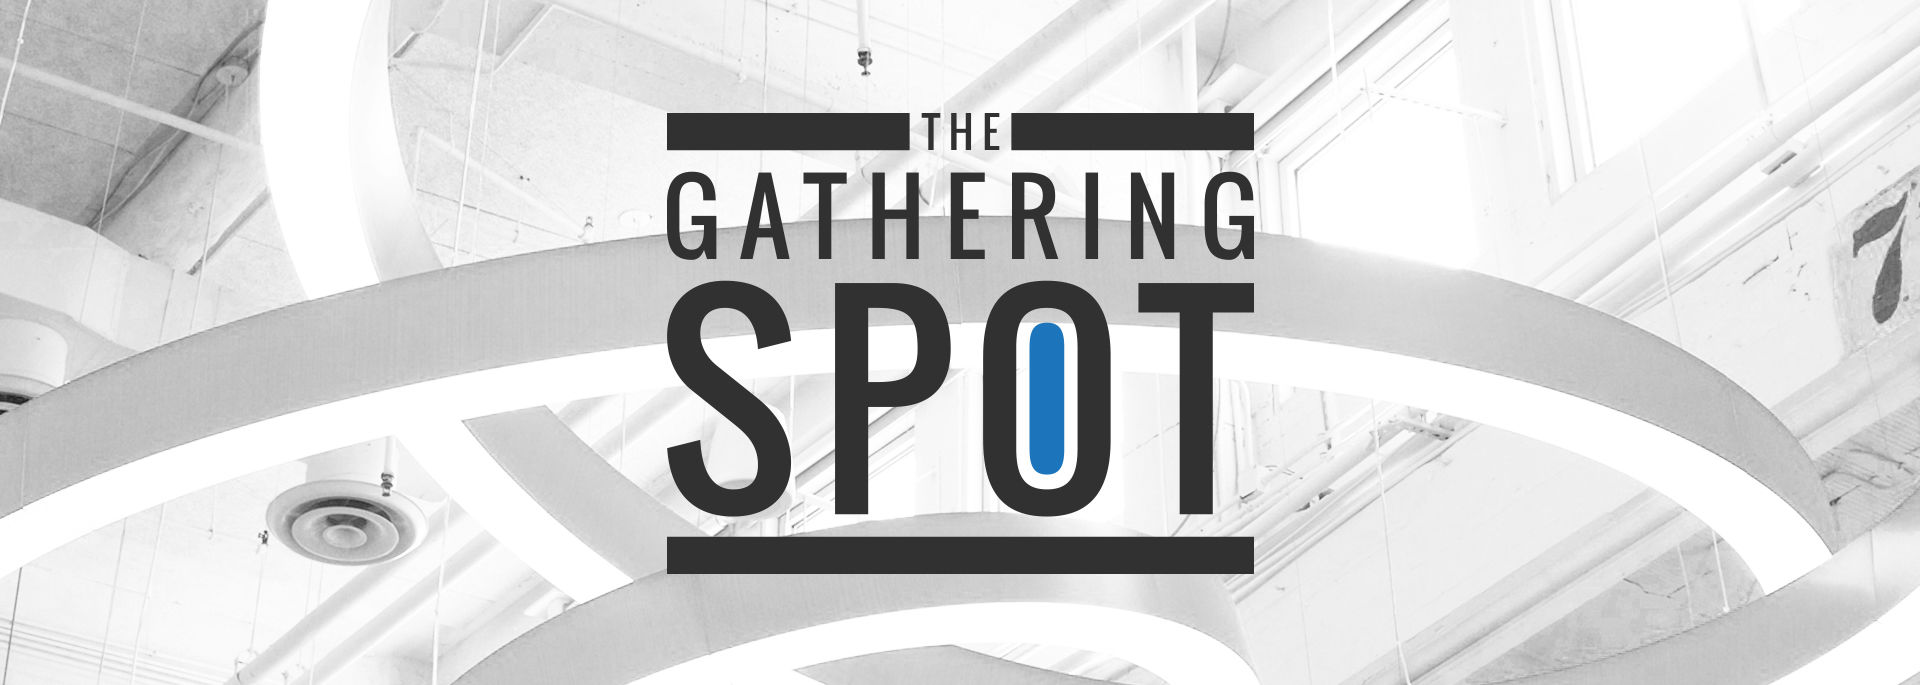 The Gathering Spot channel